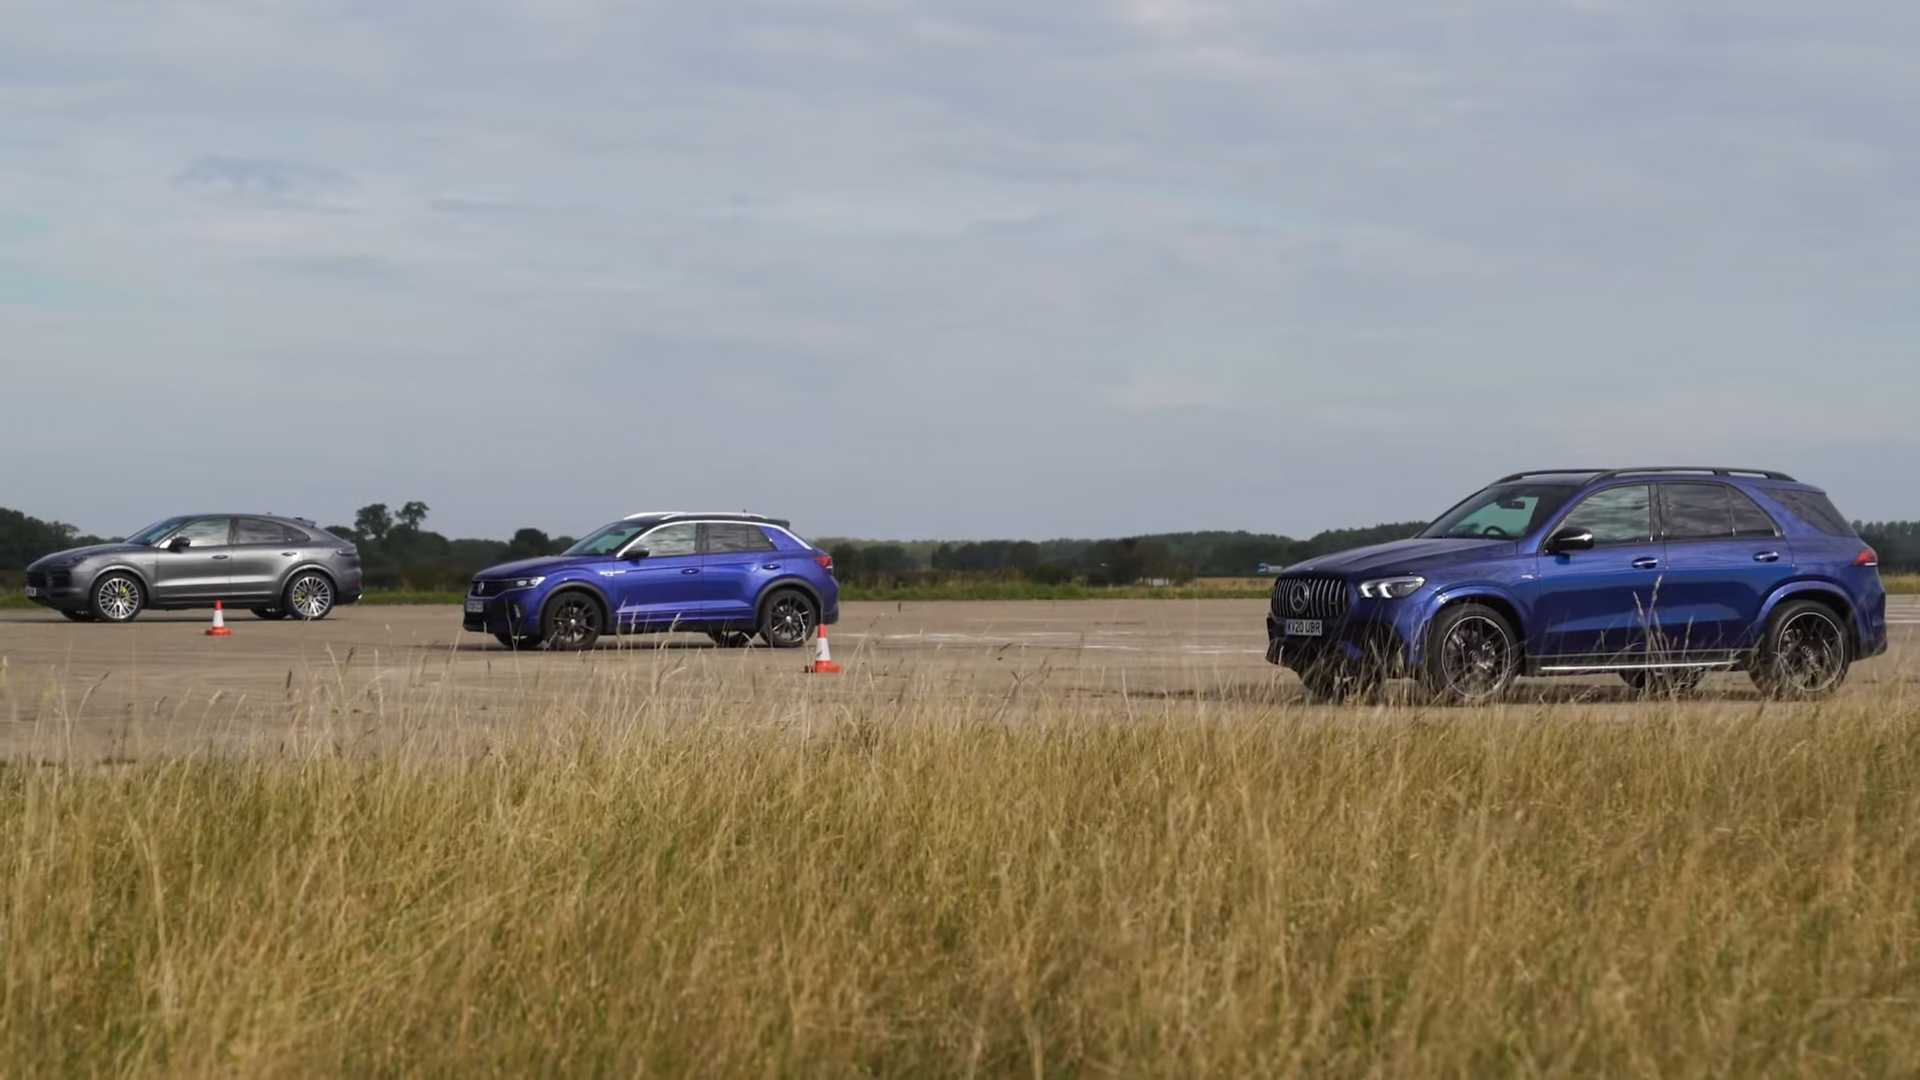 VW T-Roc R Surprises Against Porsche Cayenne, AMG GLE 53 In Drag Race